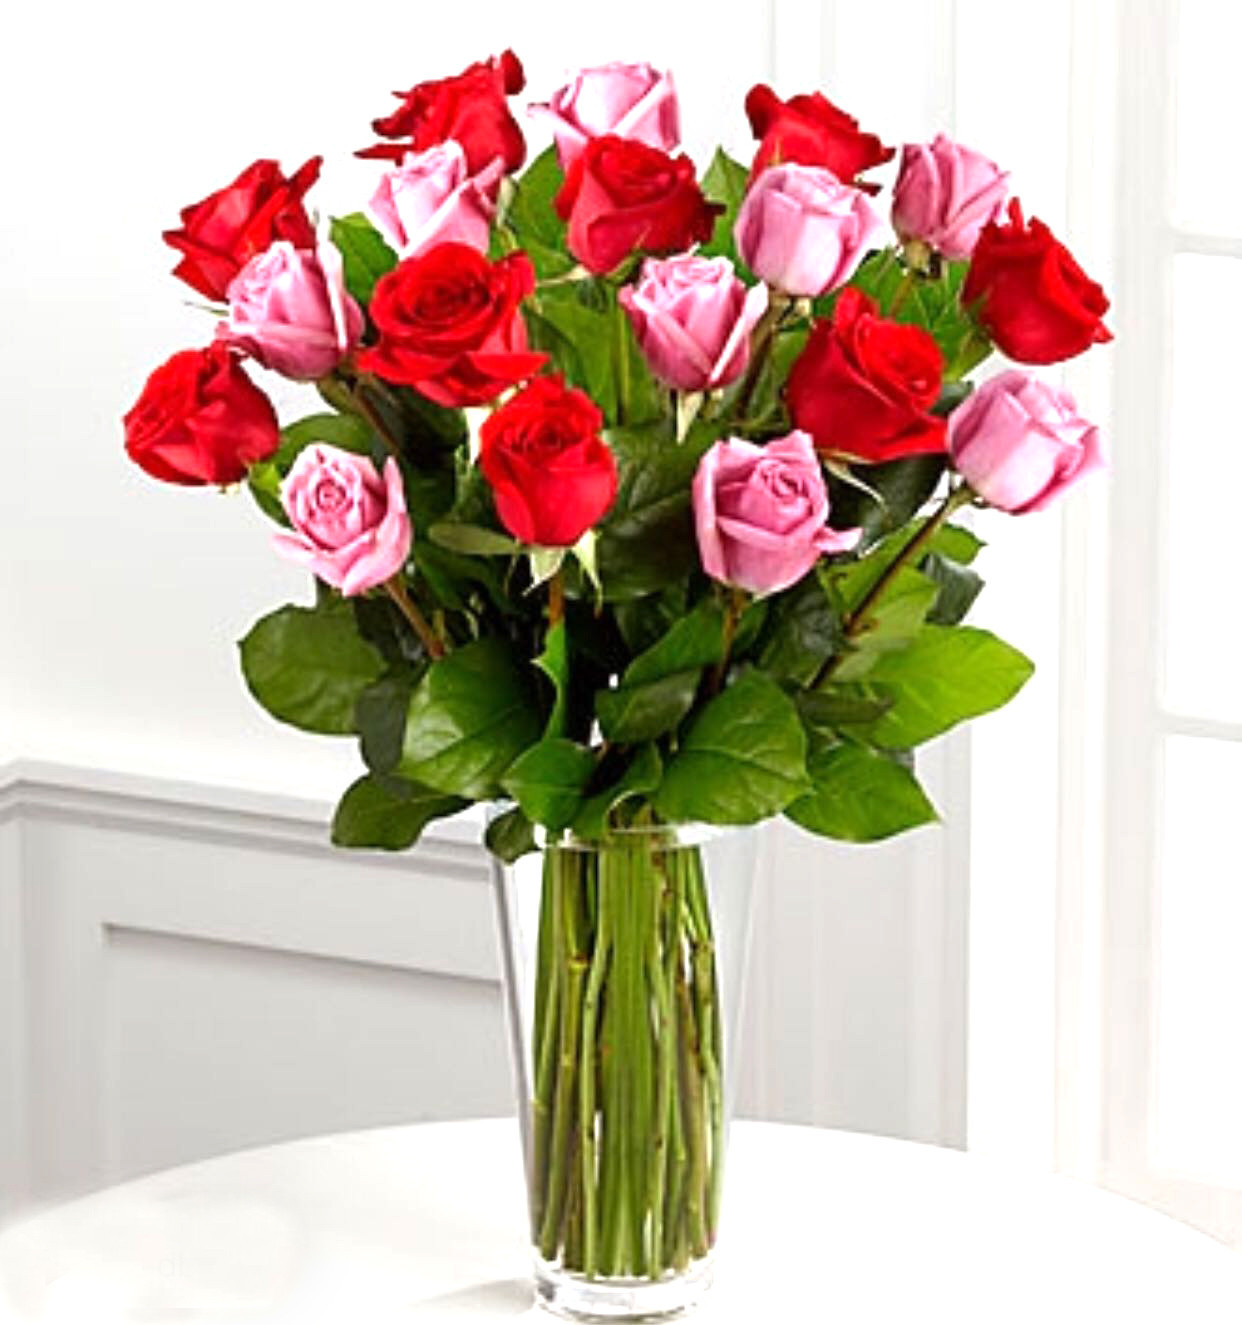 red roses with vase of red and white vase pics pink roses with wax flowerh vases in a vase with regard to red and white vase pics pink roses with wax flowerh vases in a vase floweri 0d